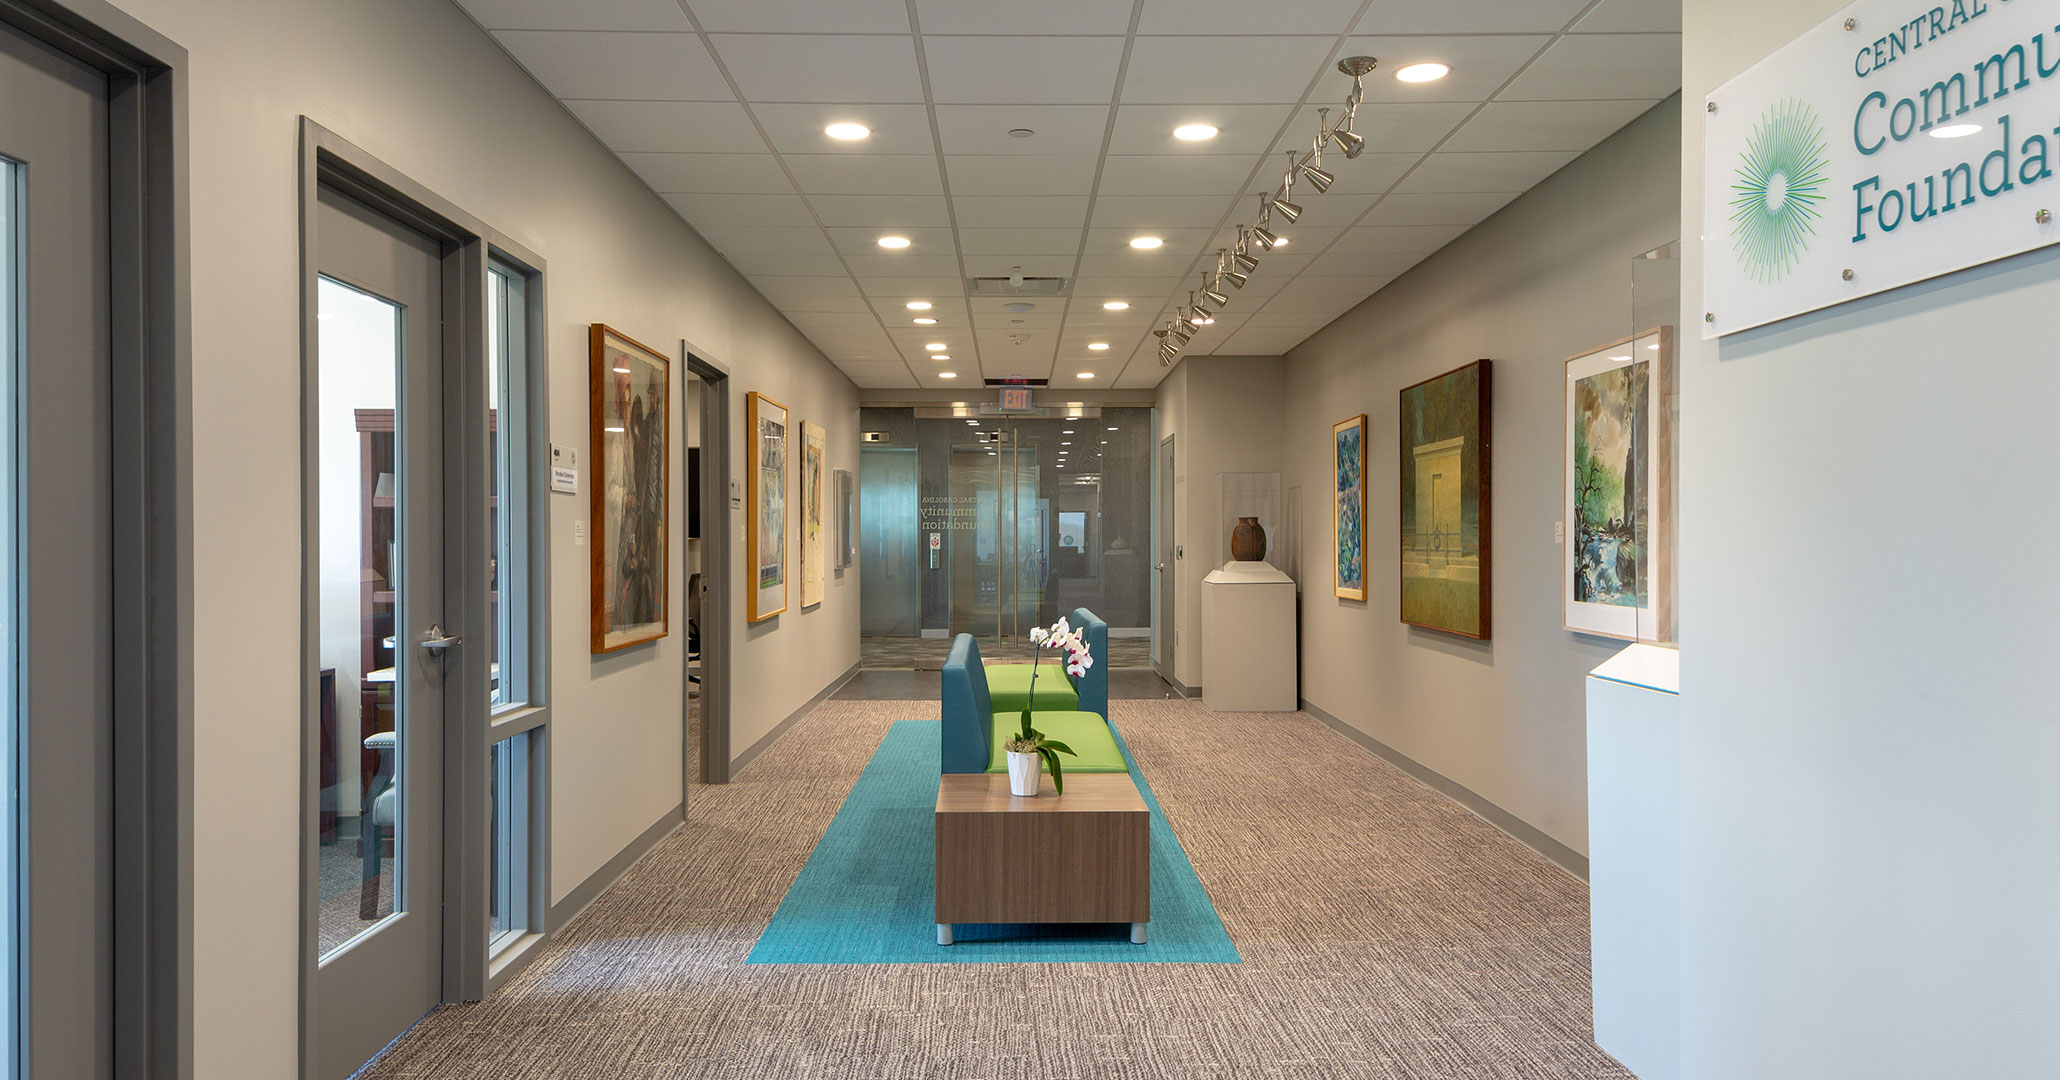 Boudreaux architects worked with the Central Carolina Community Foundation to provide interior design and programming services for their new office space at Bull Street District.